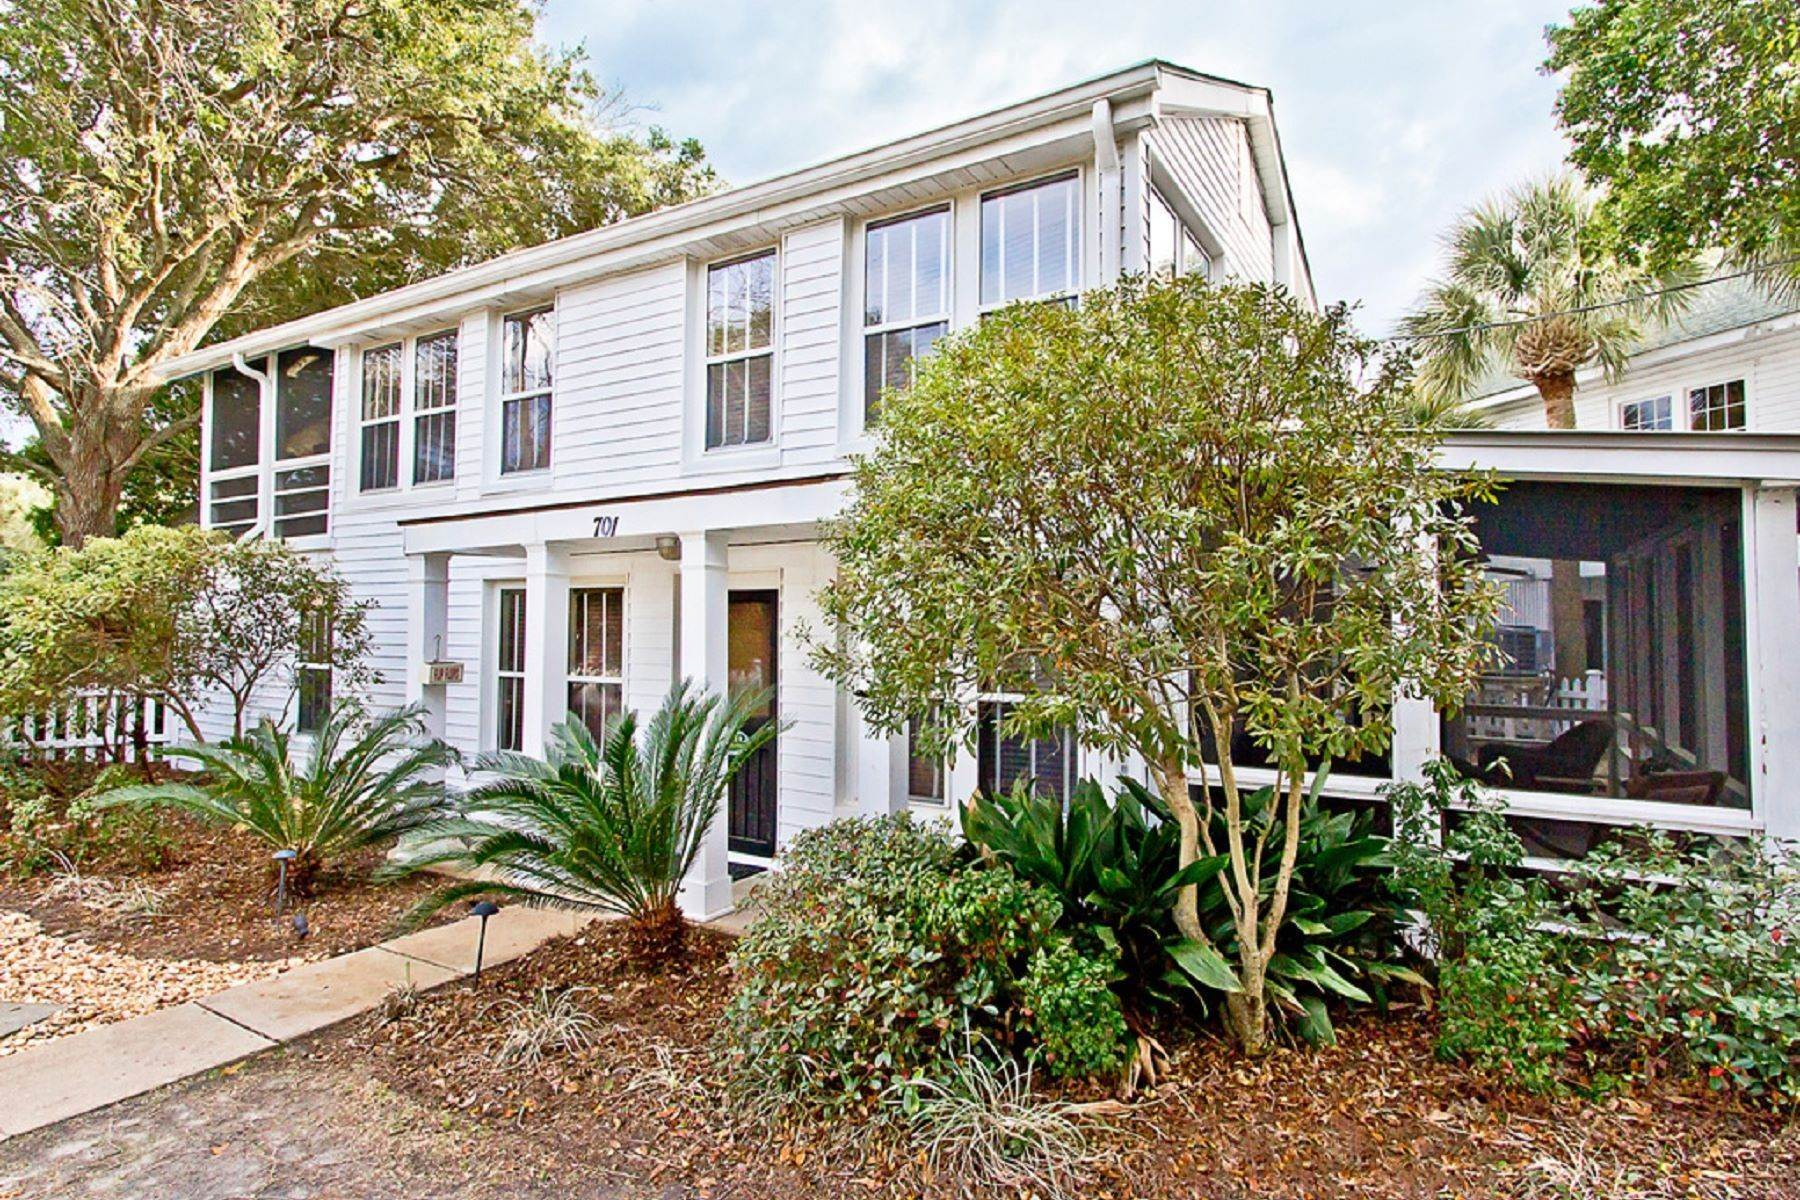 Single Family Homes for Sale at The Ultimate Tybee Home With In-Ground Pool And Dock On Tidal Creek 701 13th Street Tybee Island, Georgia 31328 United States